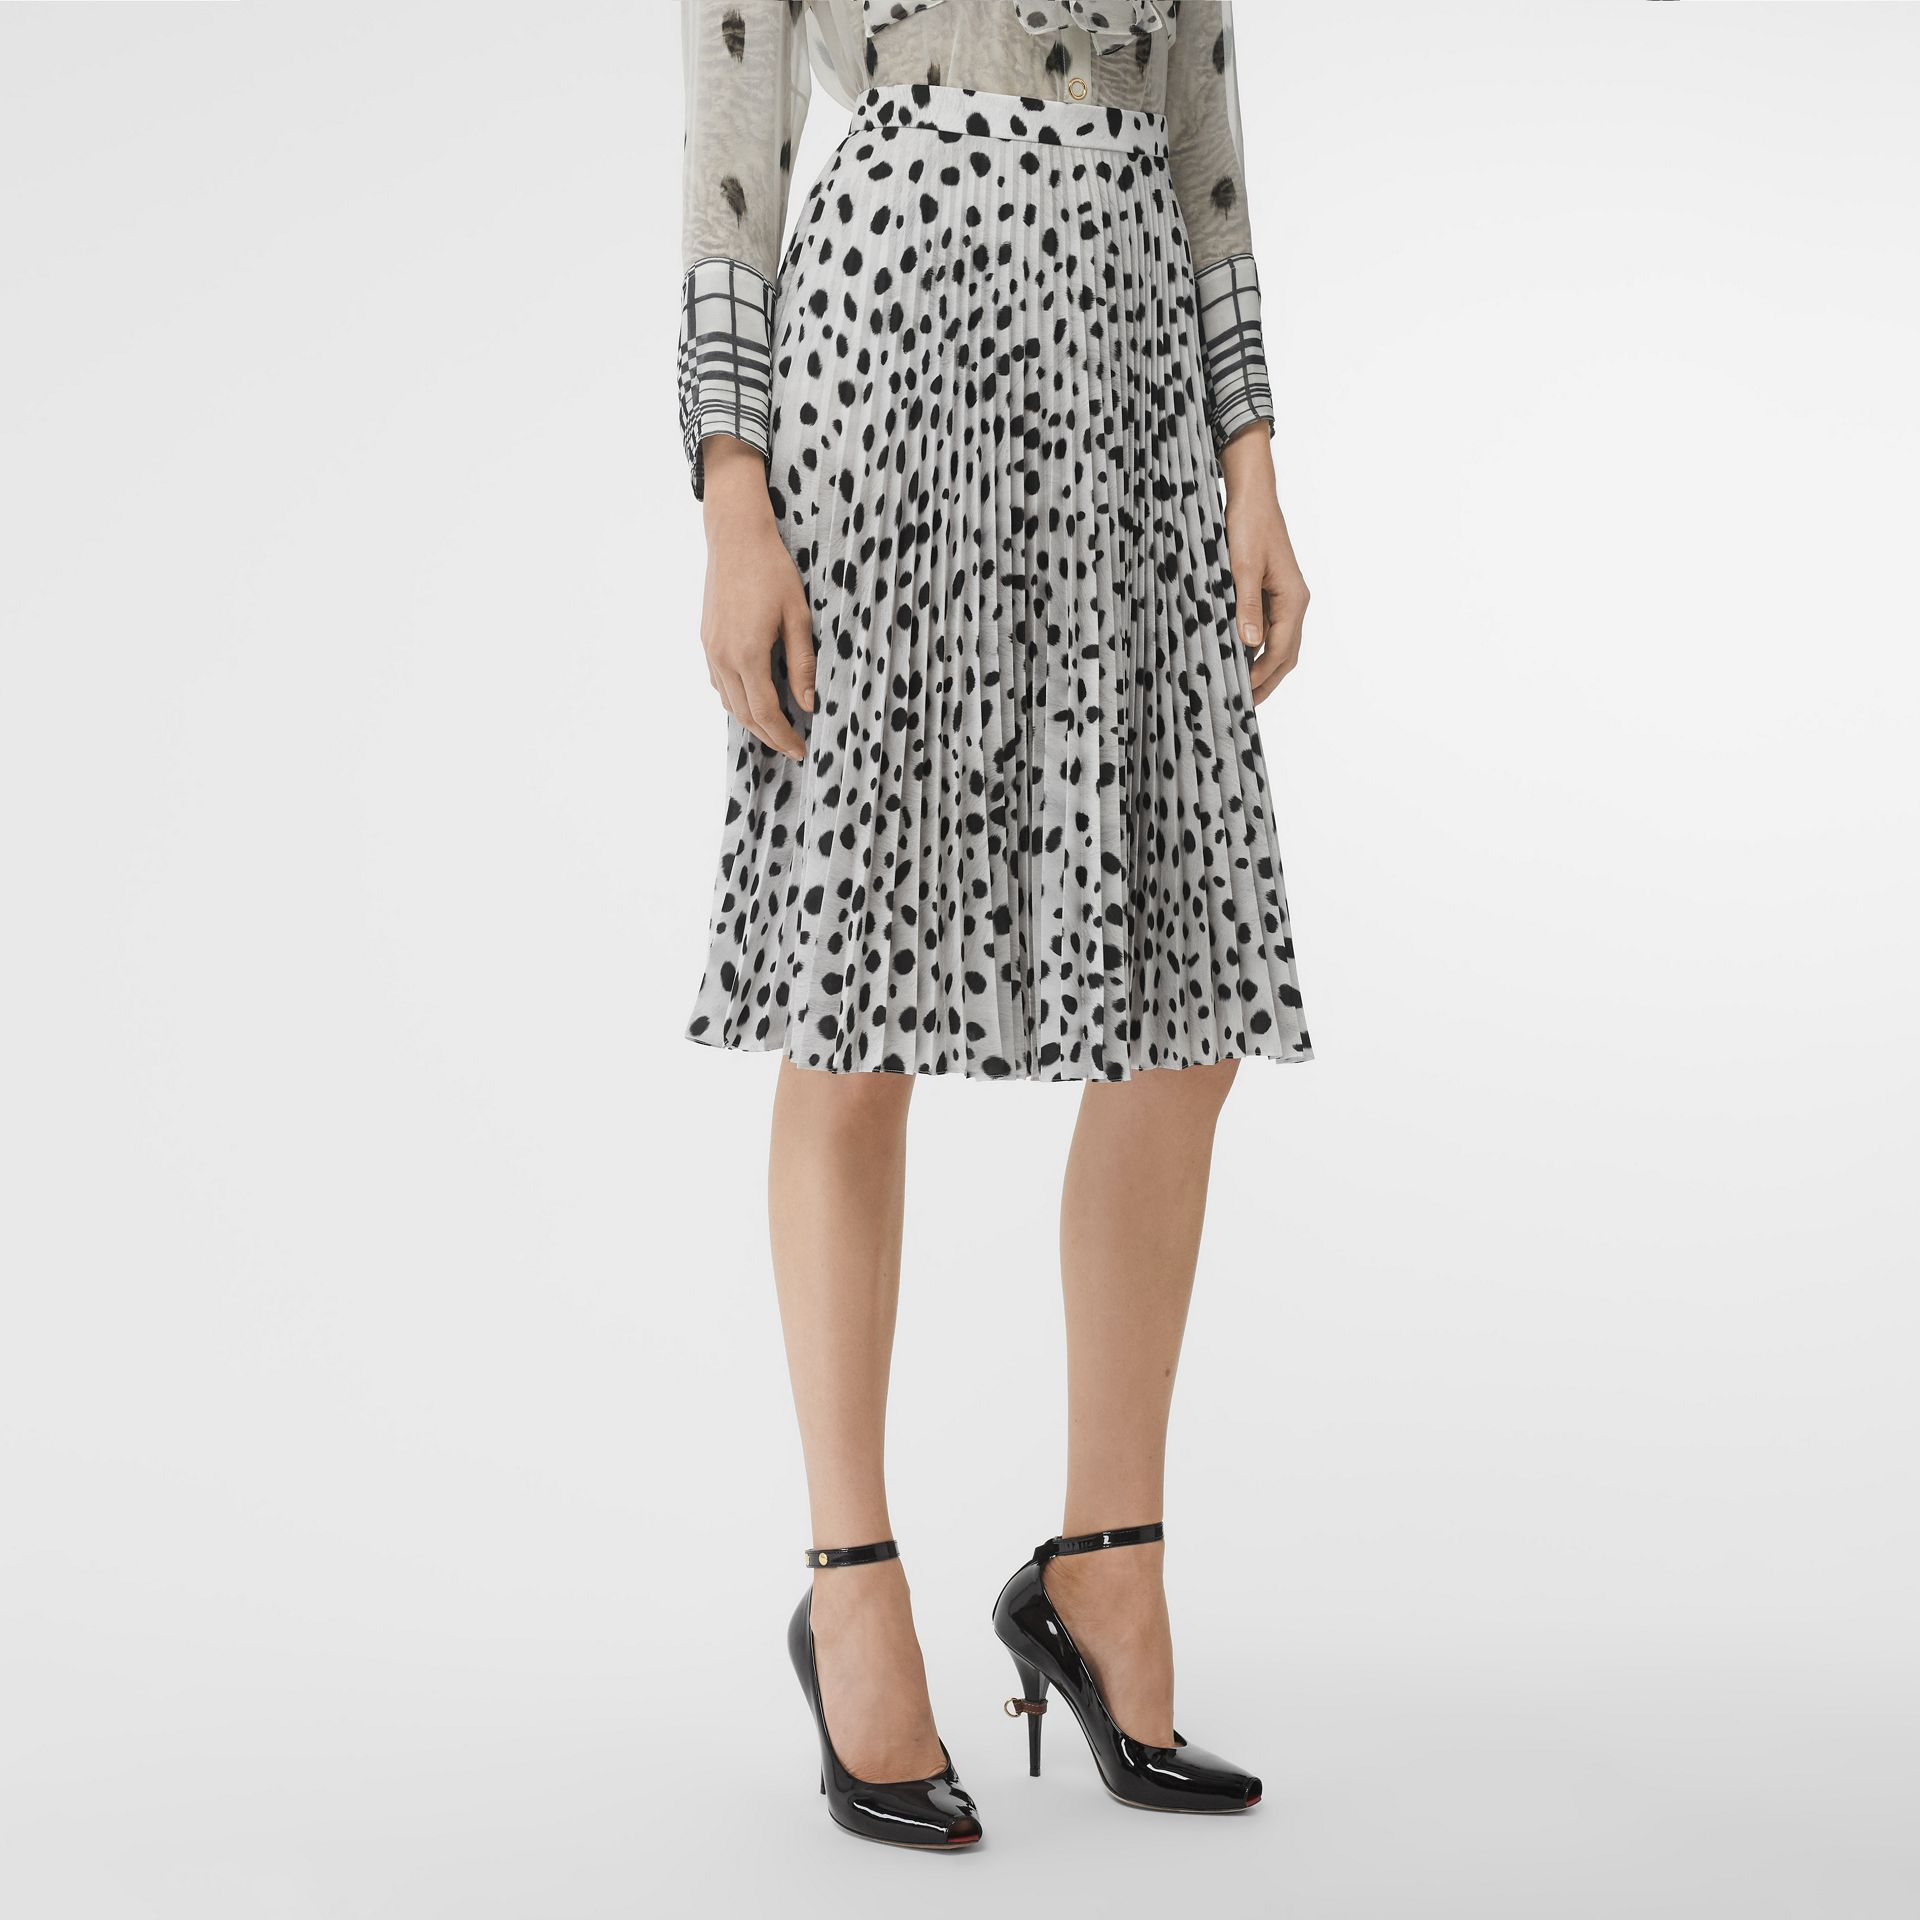 Dalmatian Print Crepe Pleated Skirt in Black/white - Women | Burberry United States - gallery image 4